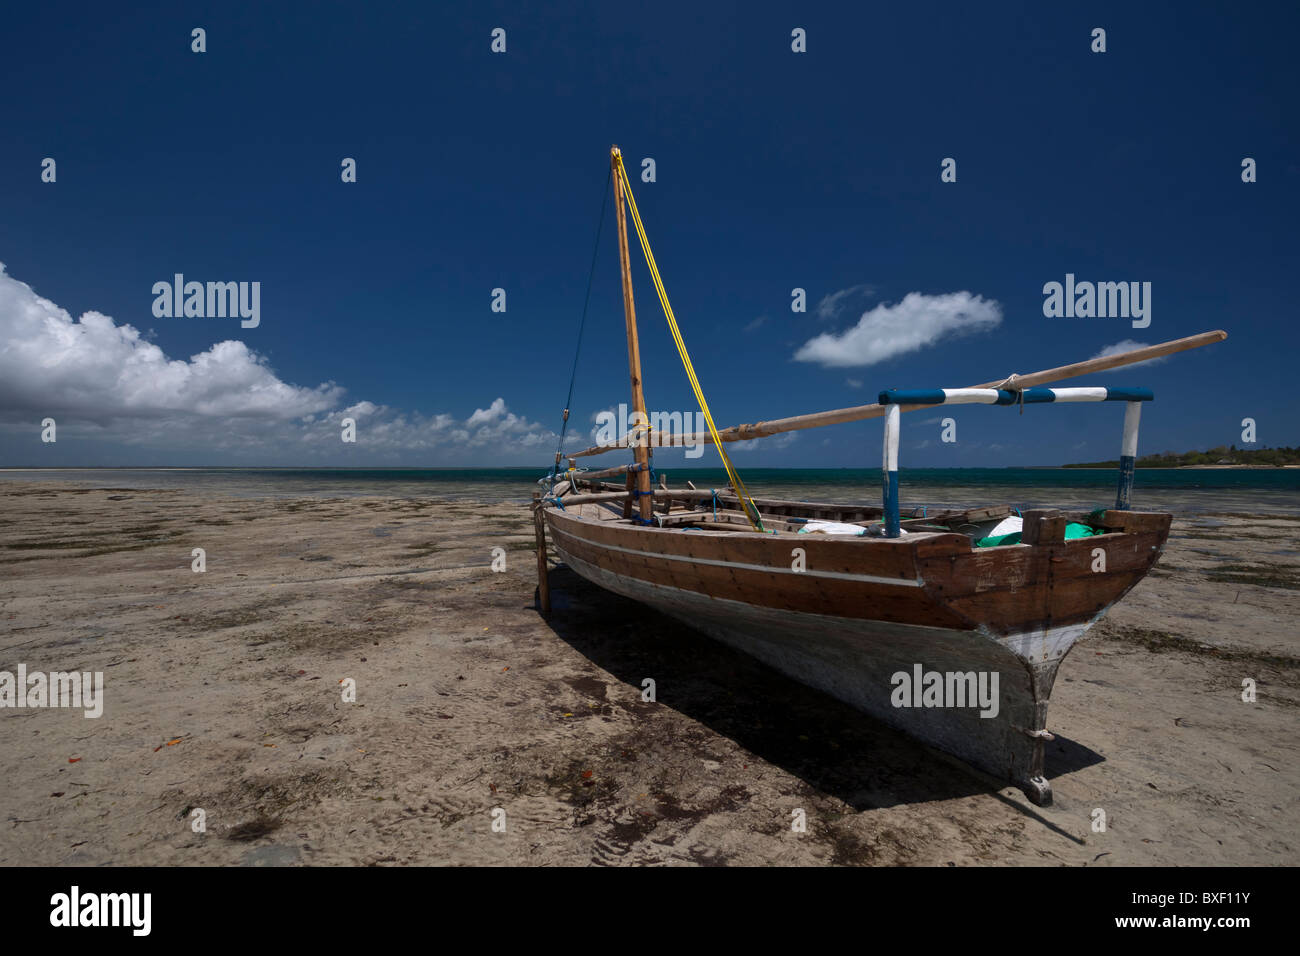 Traditional dhow waiting for the tide to come in - Stock Image